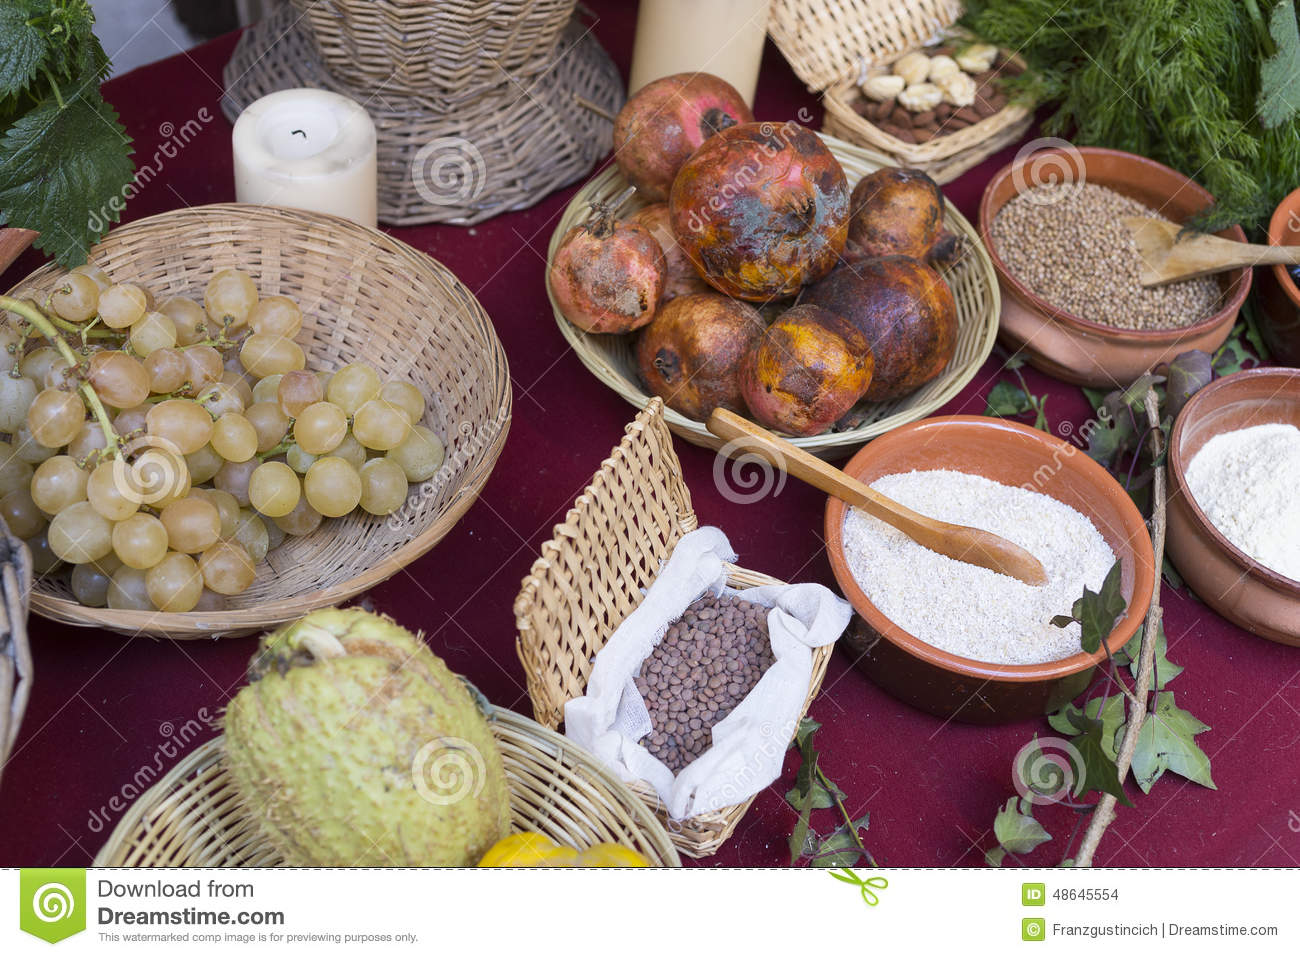 essay on ancient roman food Ancient rome essay 820 words | 4 pages the story of ancient rome is a tale of how a small community of shepherds in the central italy grew to become one of the greatest empires in.